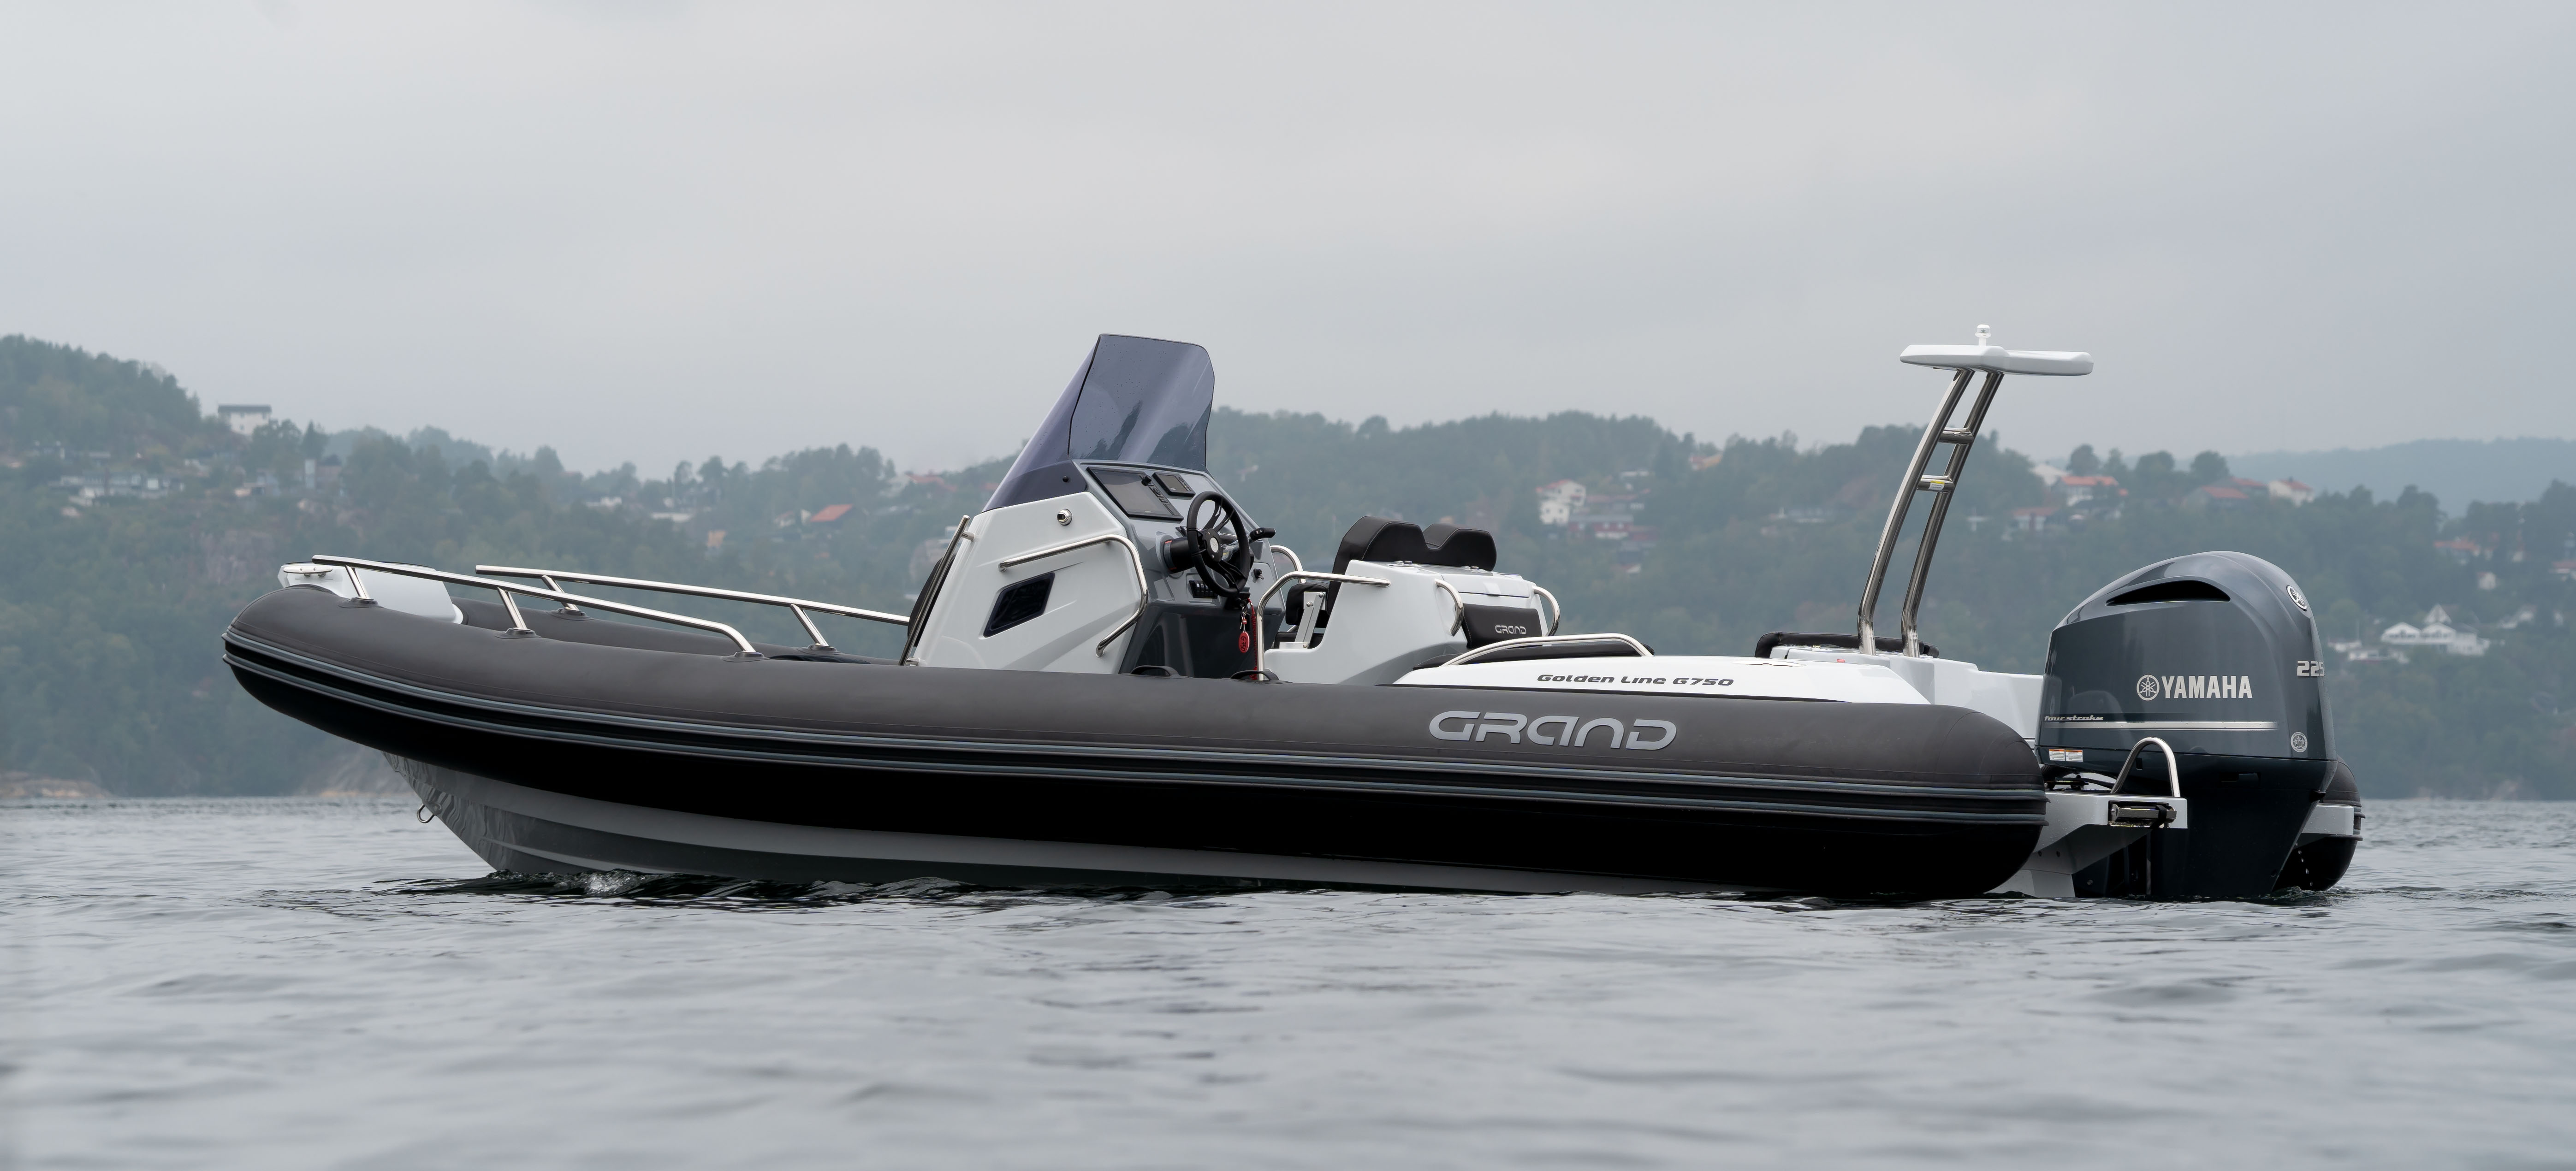 GRAND G750 for sale at Harbour Marine